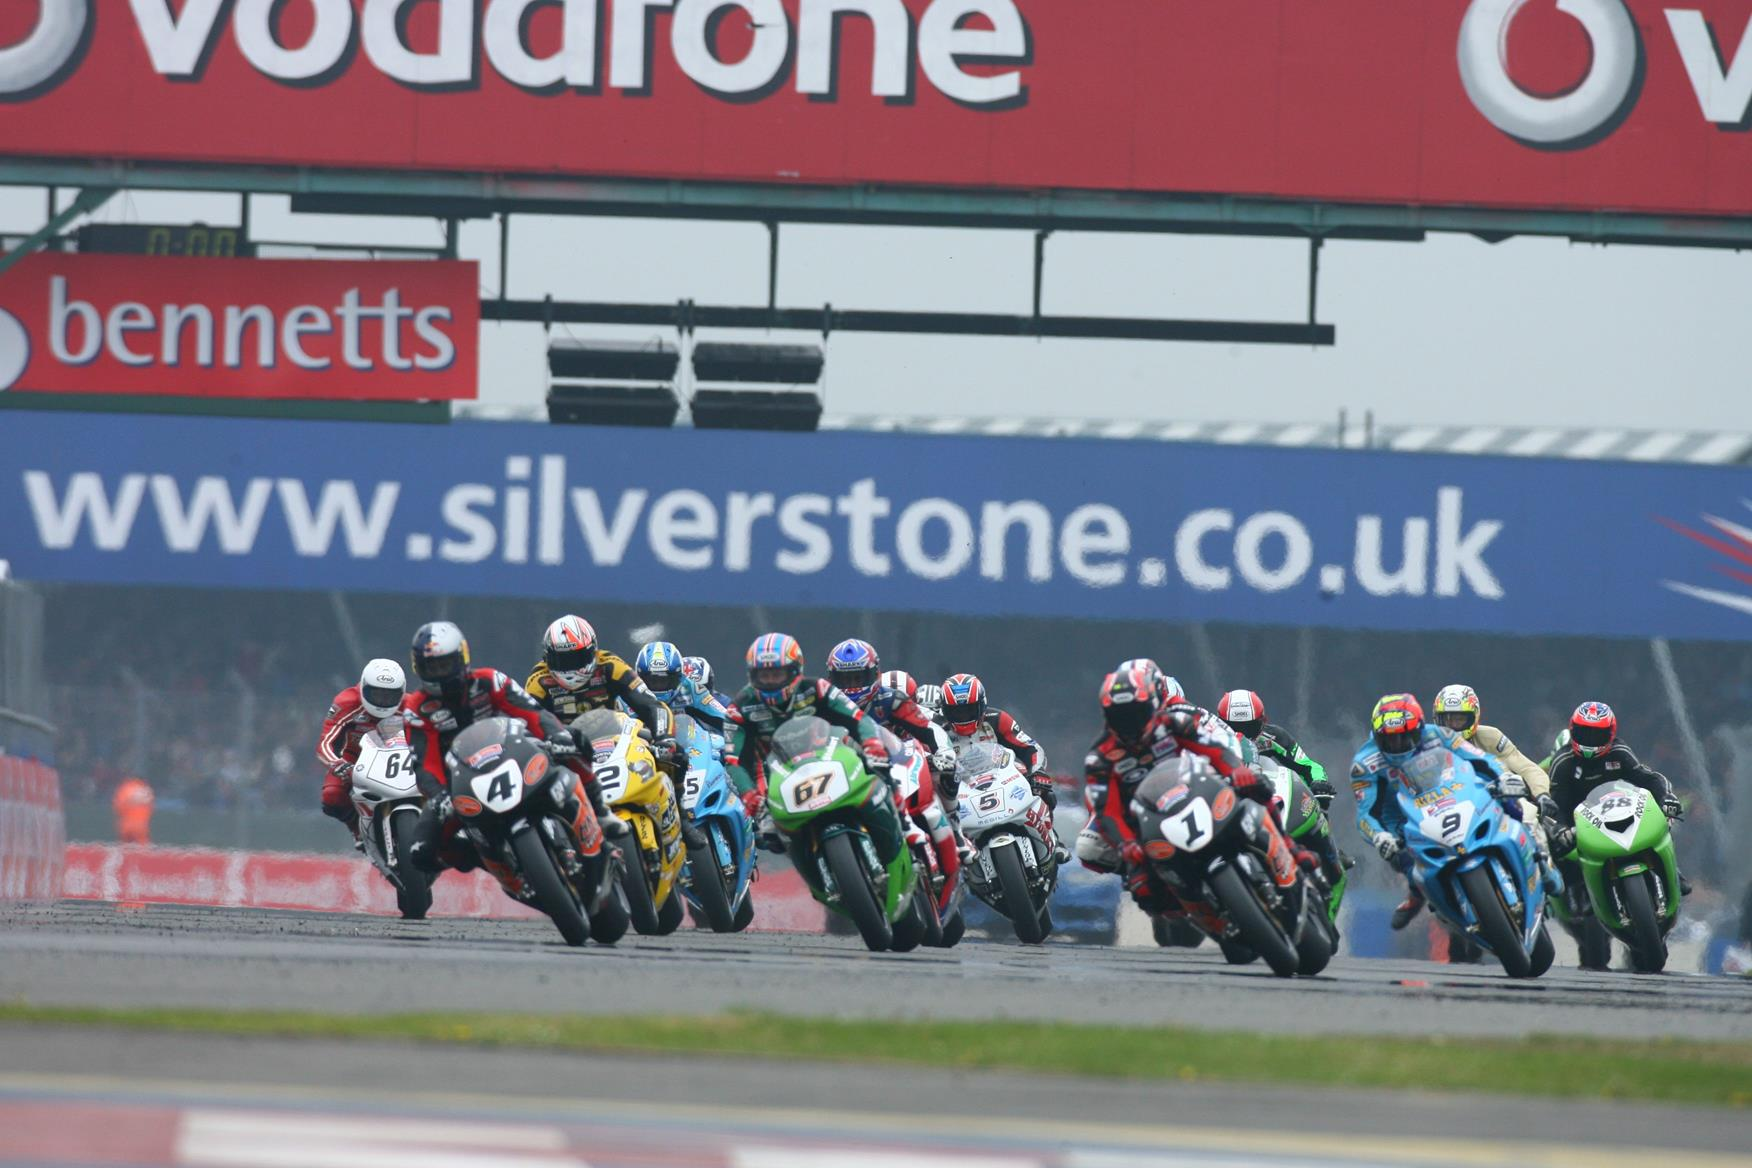 Silverstone redevelopment plans given major boost | MCN